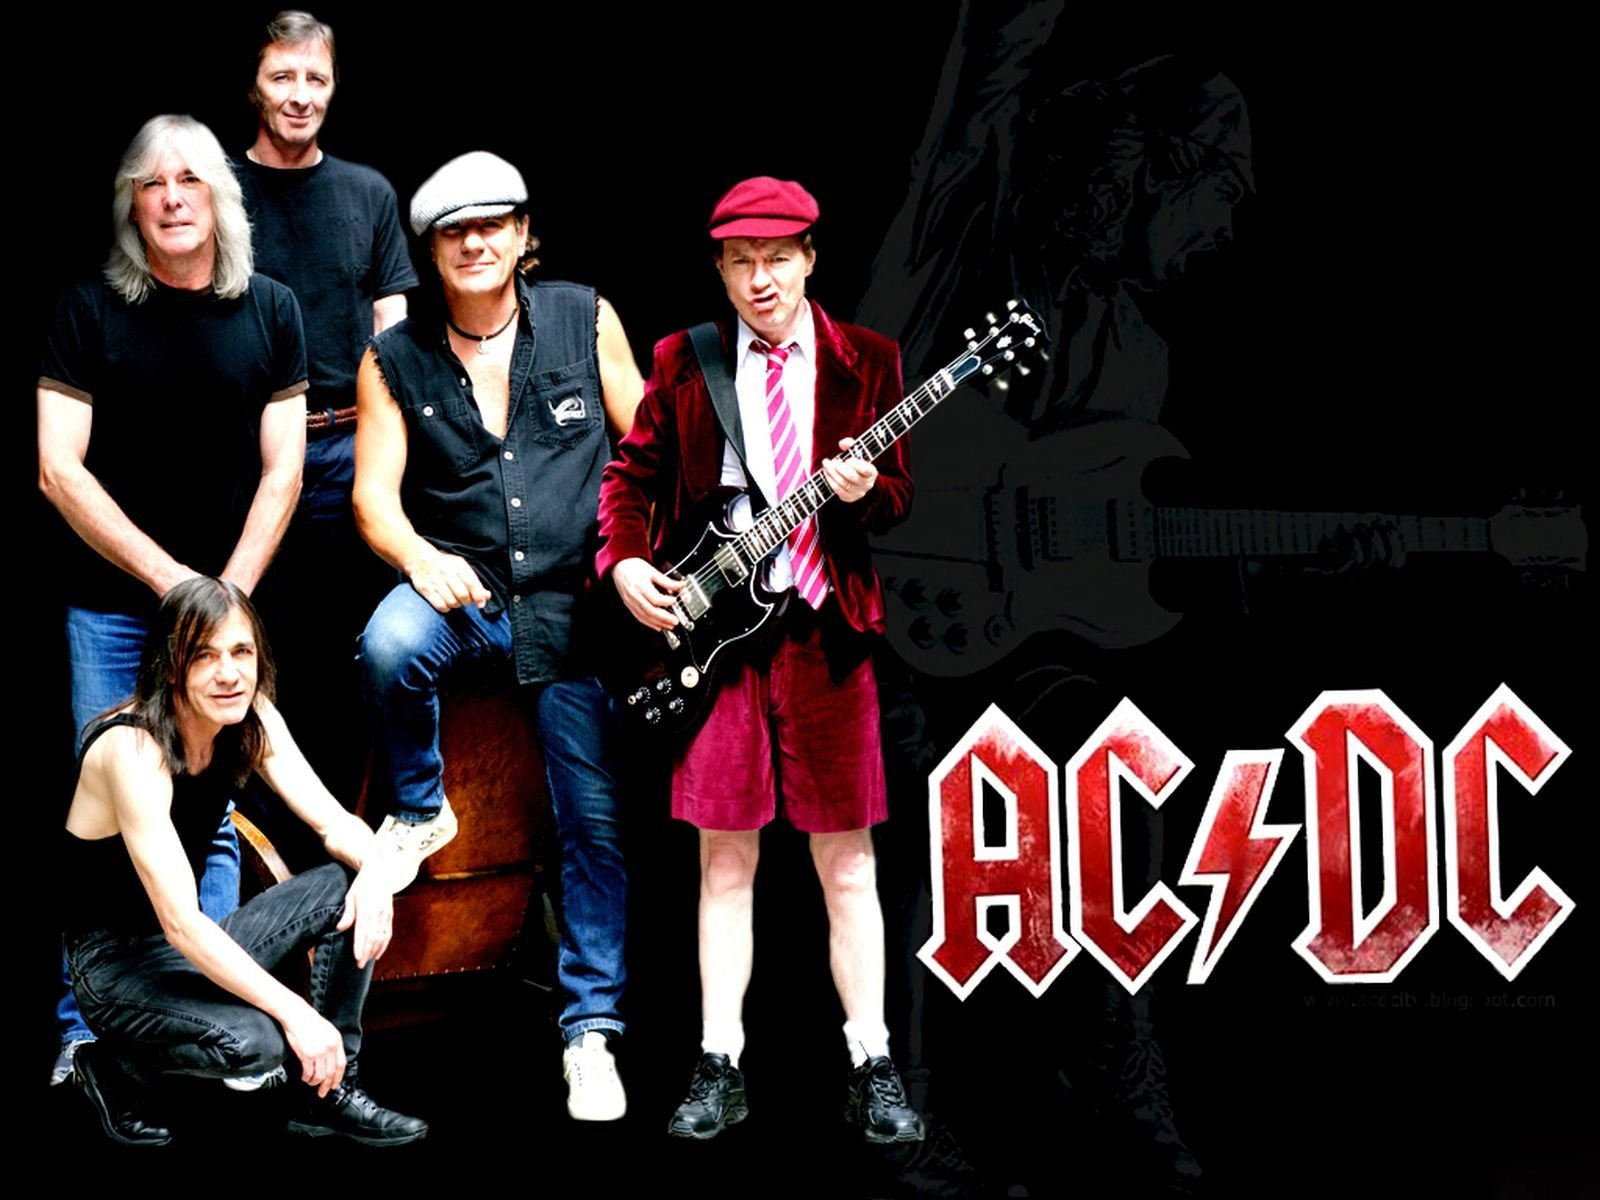 acdc wallpaper and background image 1600x1200 id 433503. Black Bedroom Furniture Sets. Home Design Ideas